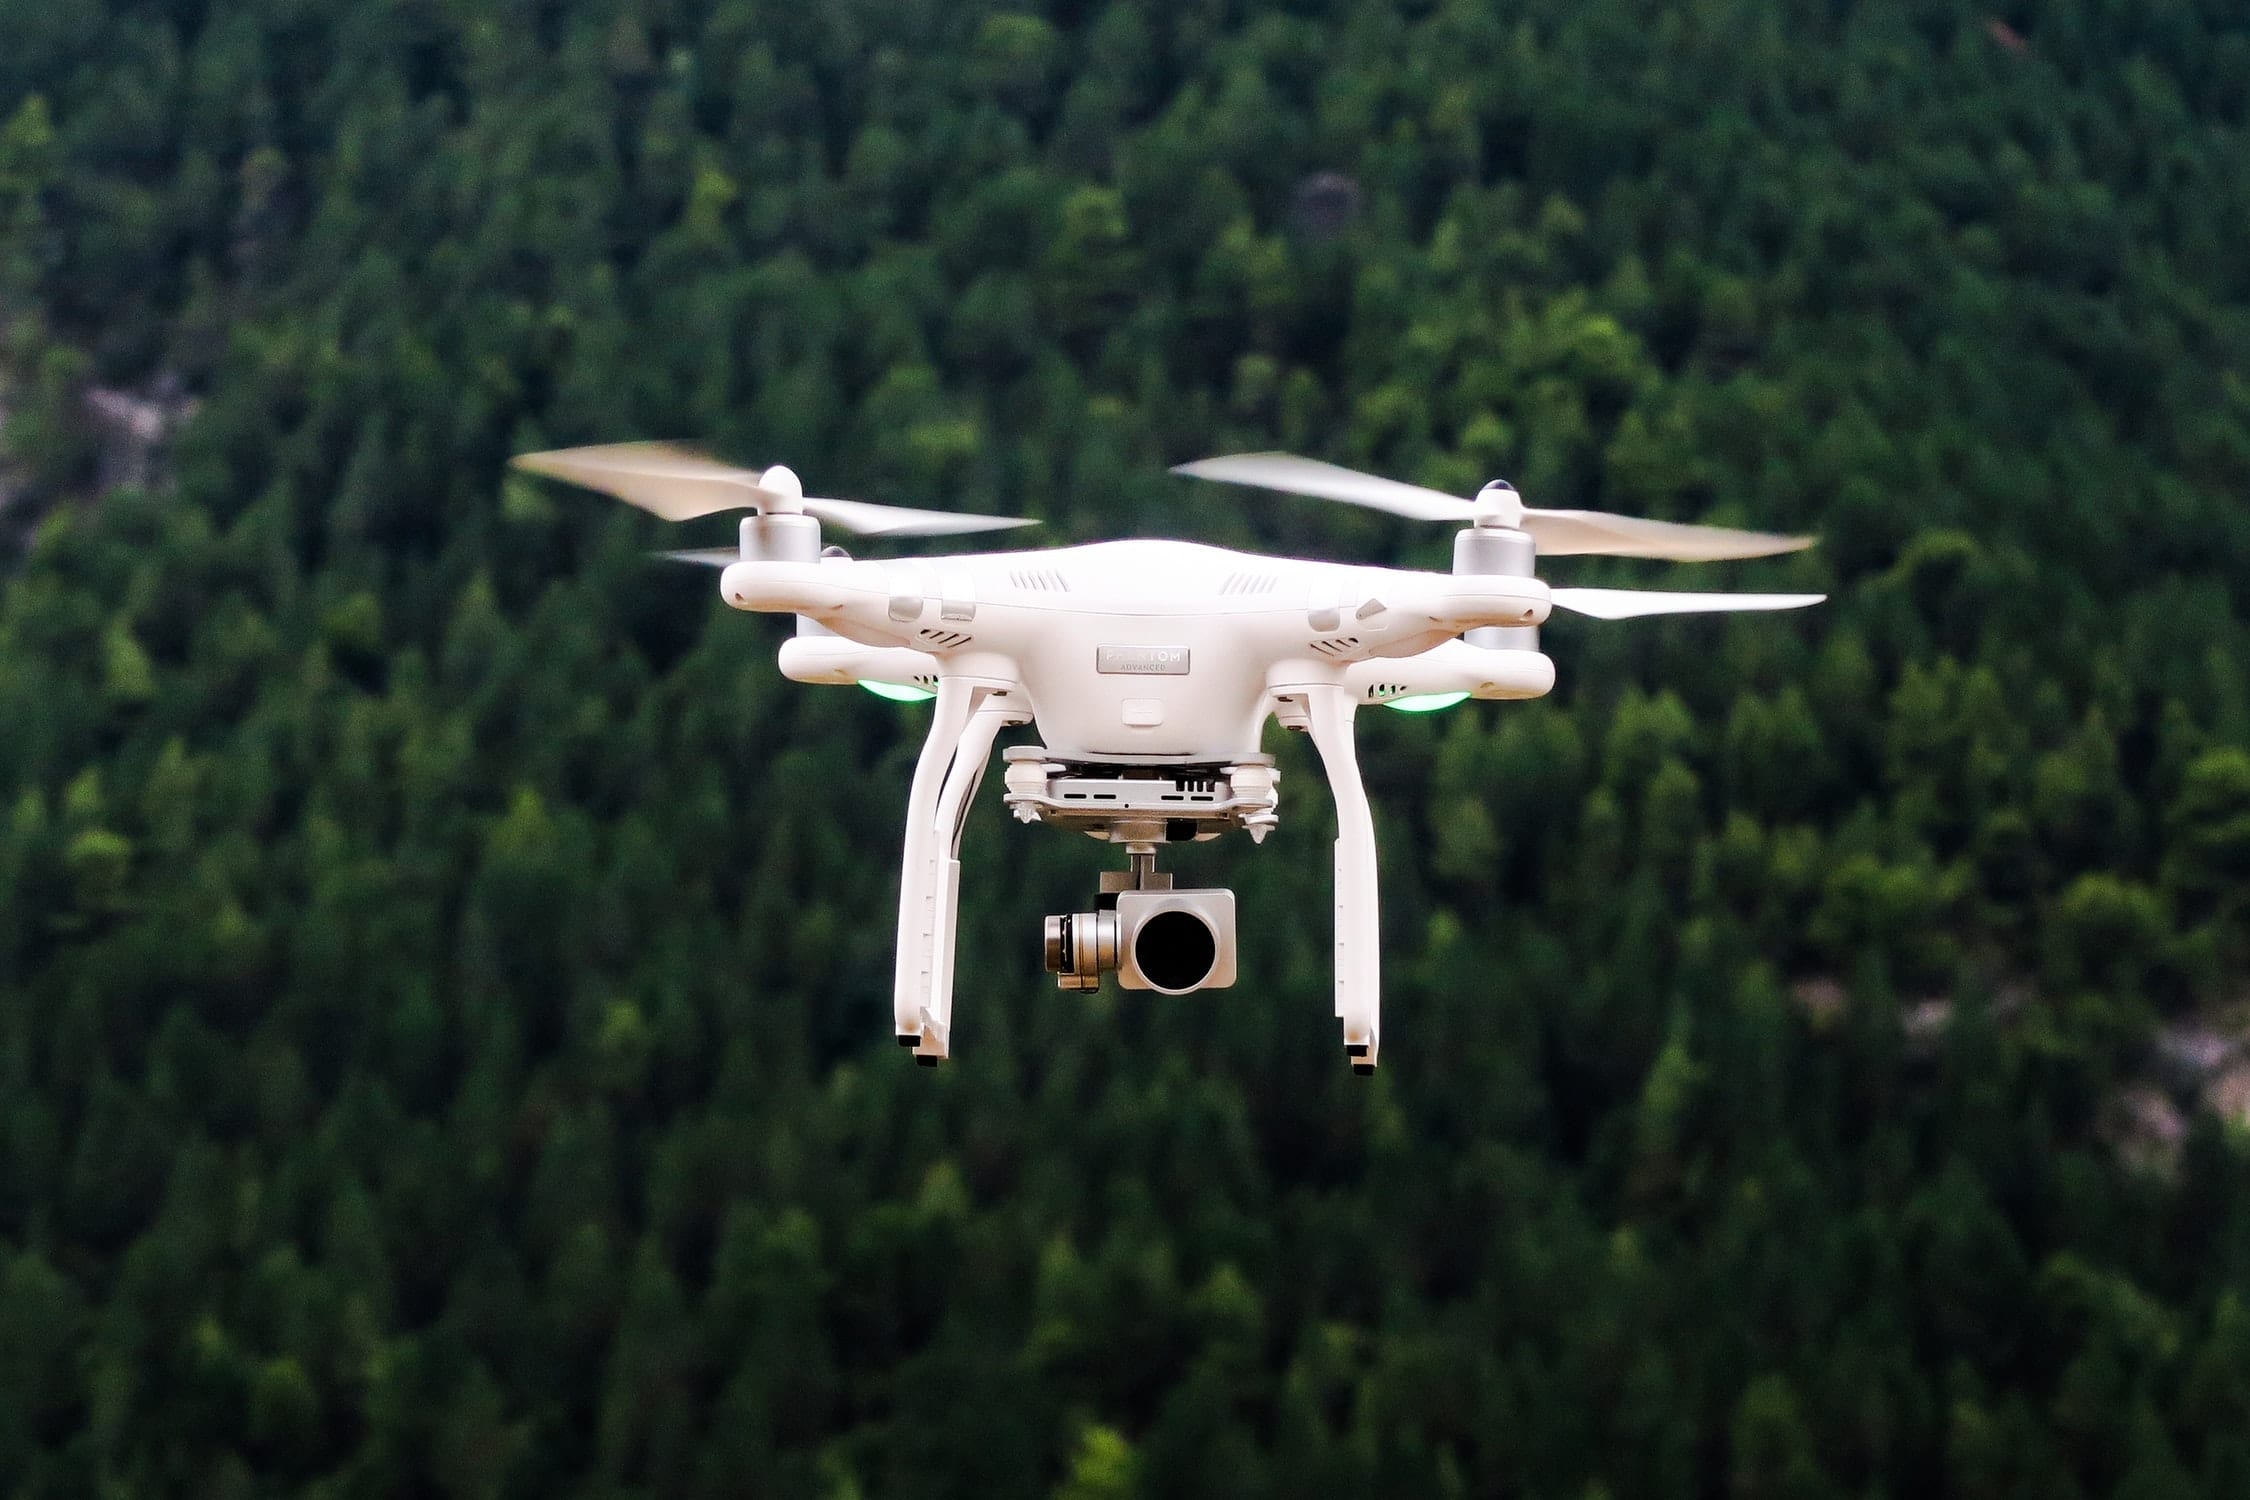 Dji phantom pro the best quality drone for architectural photography 2